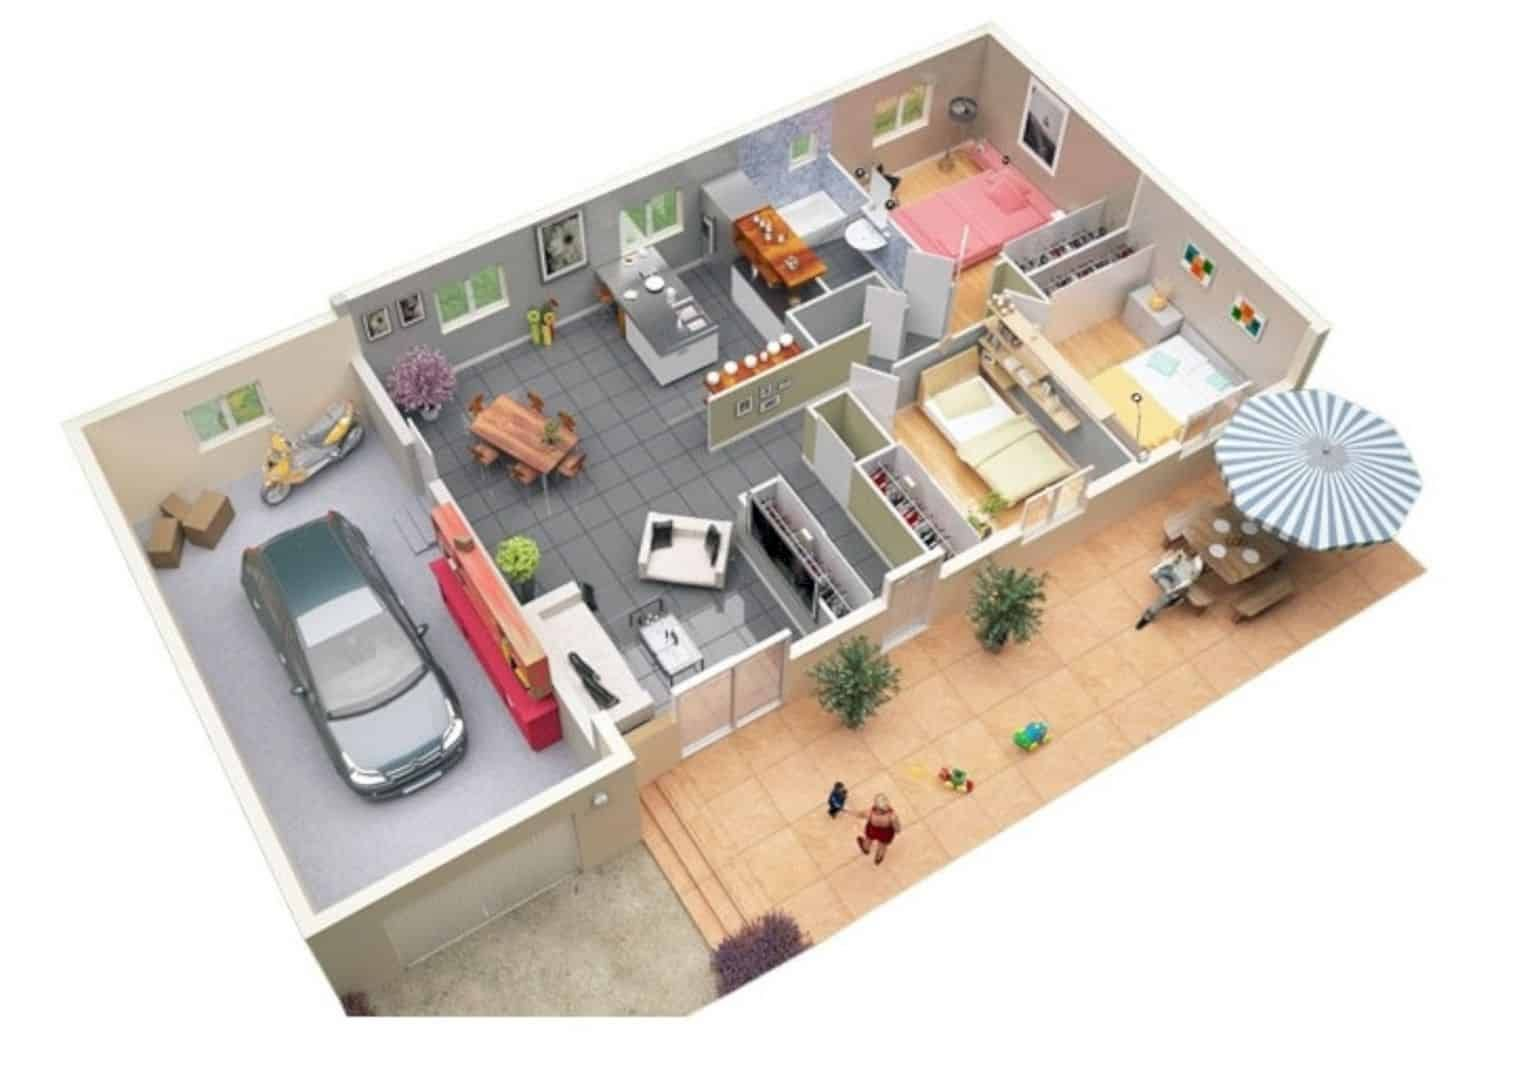 Why Do We Need 3d House Plan Before Starting The Project In 2020 House Plans 3d House Plans Floor Plan Design